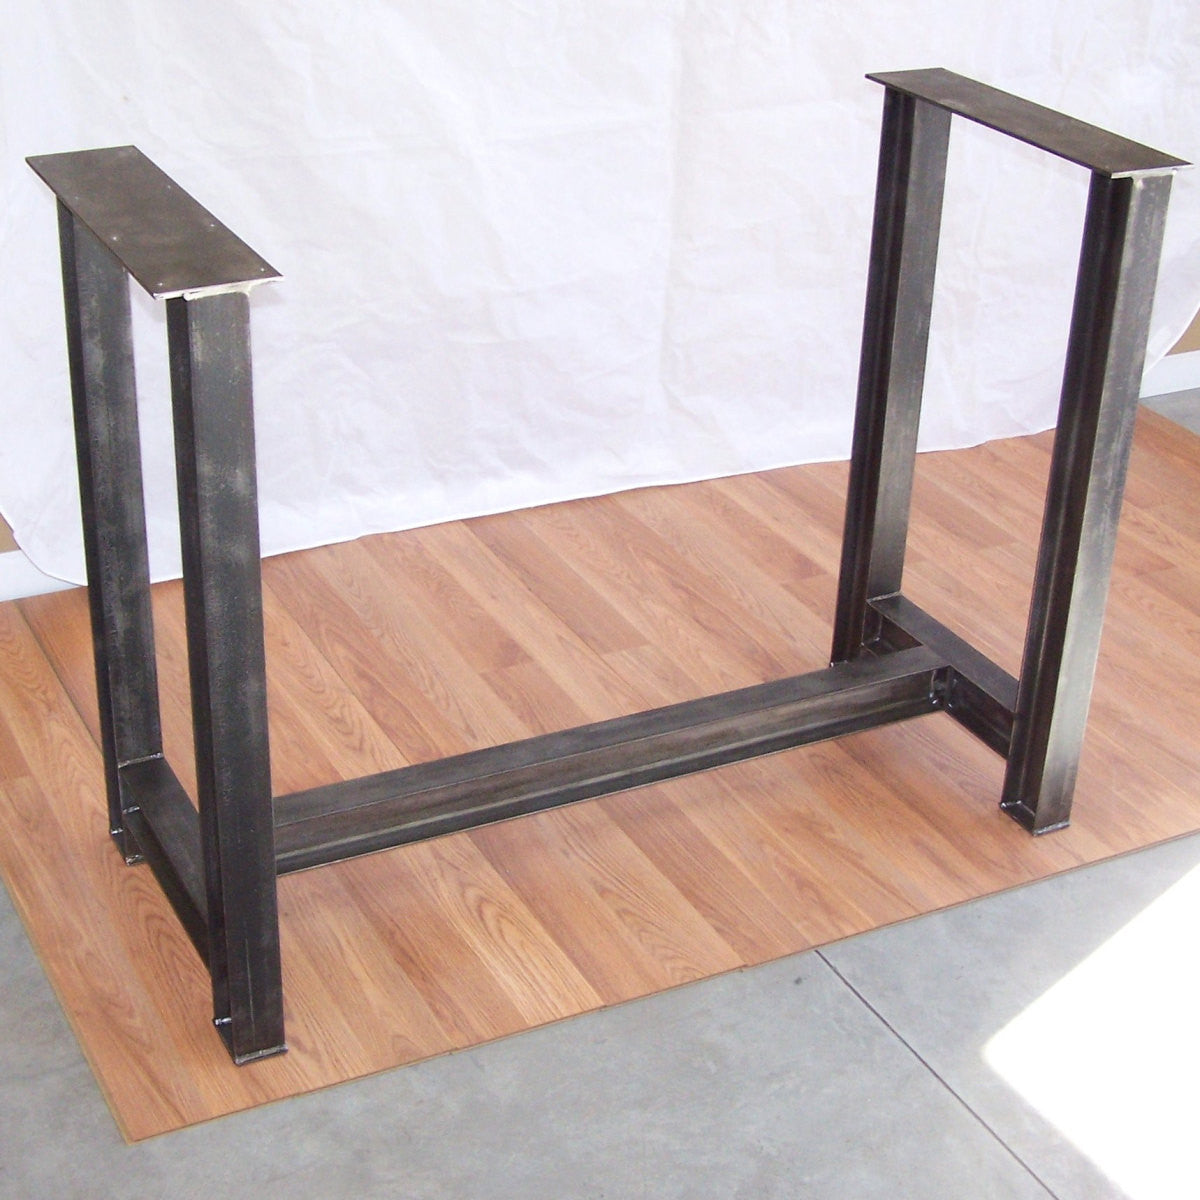 legs table desk org standing image uncategorized greeniteconomicsummit permalink with fantastic l